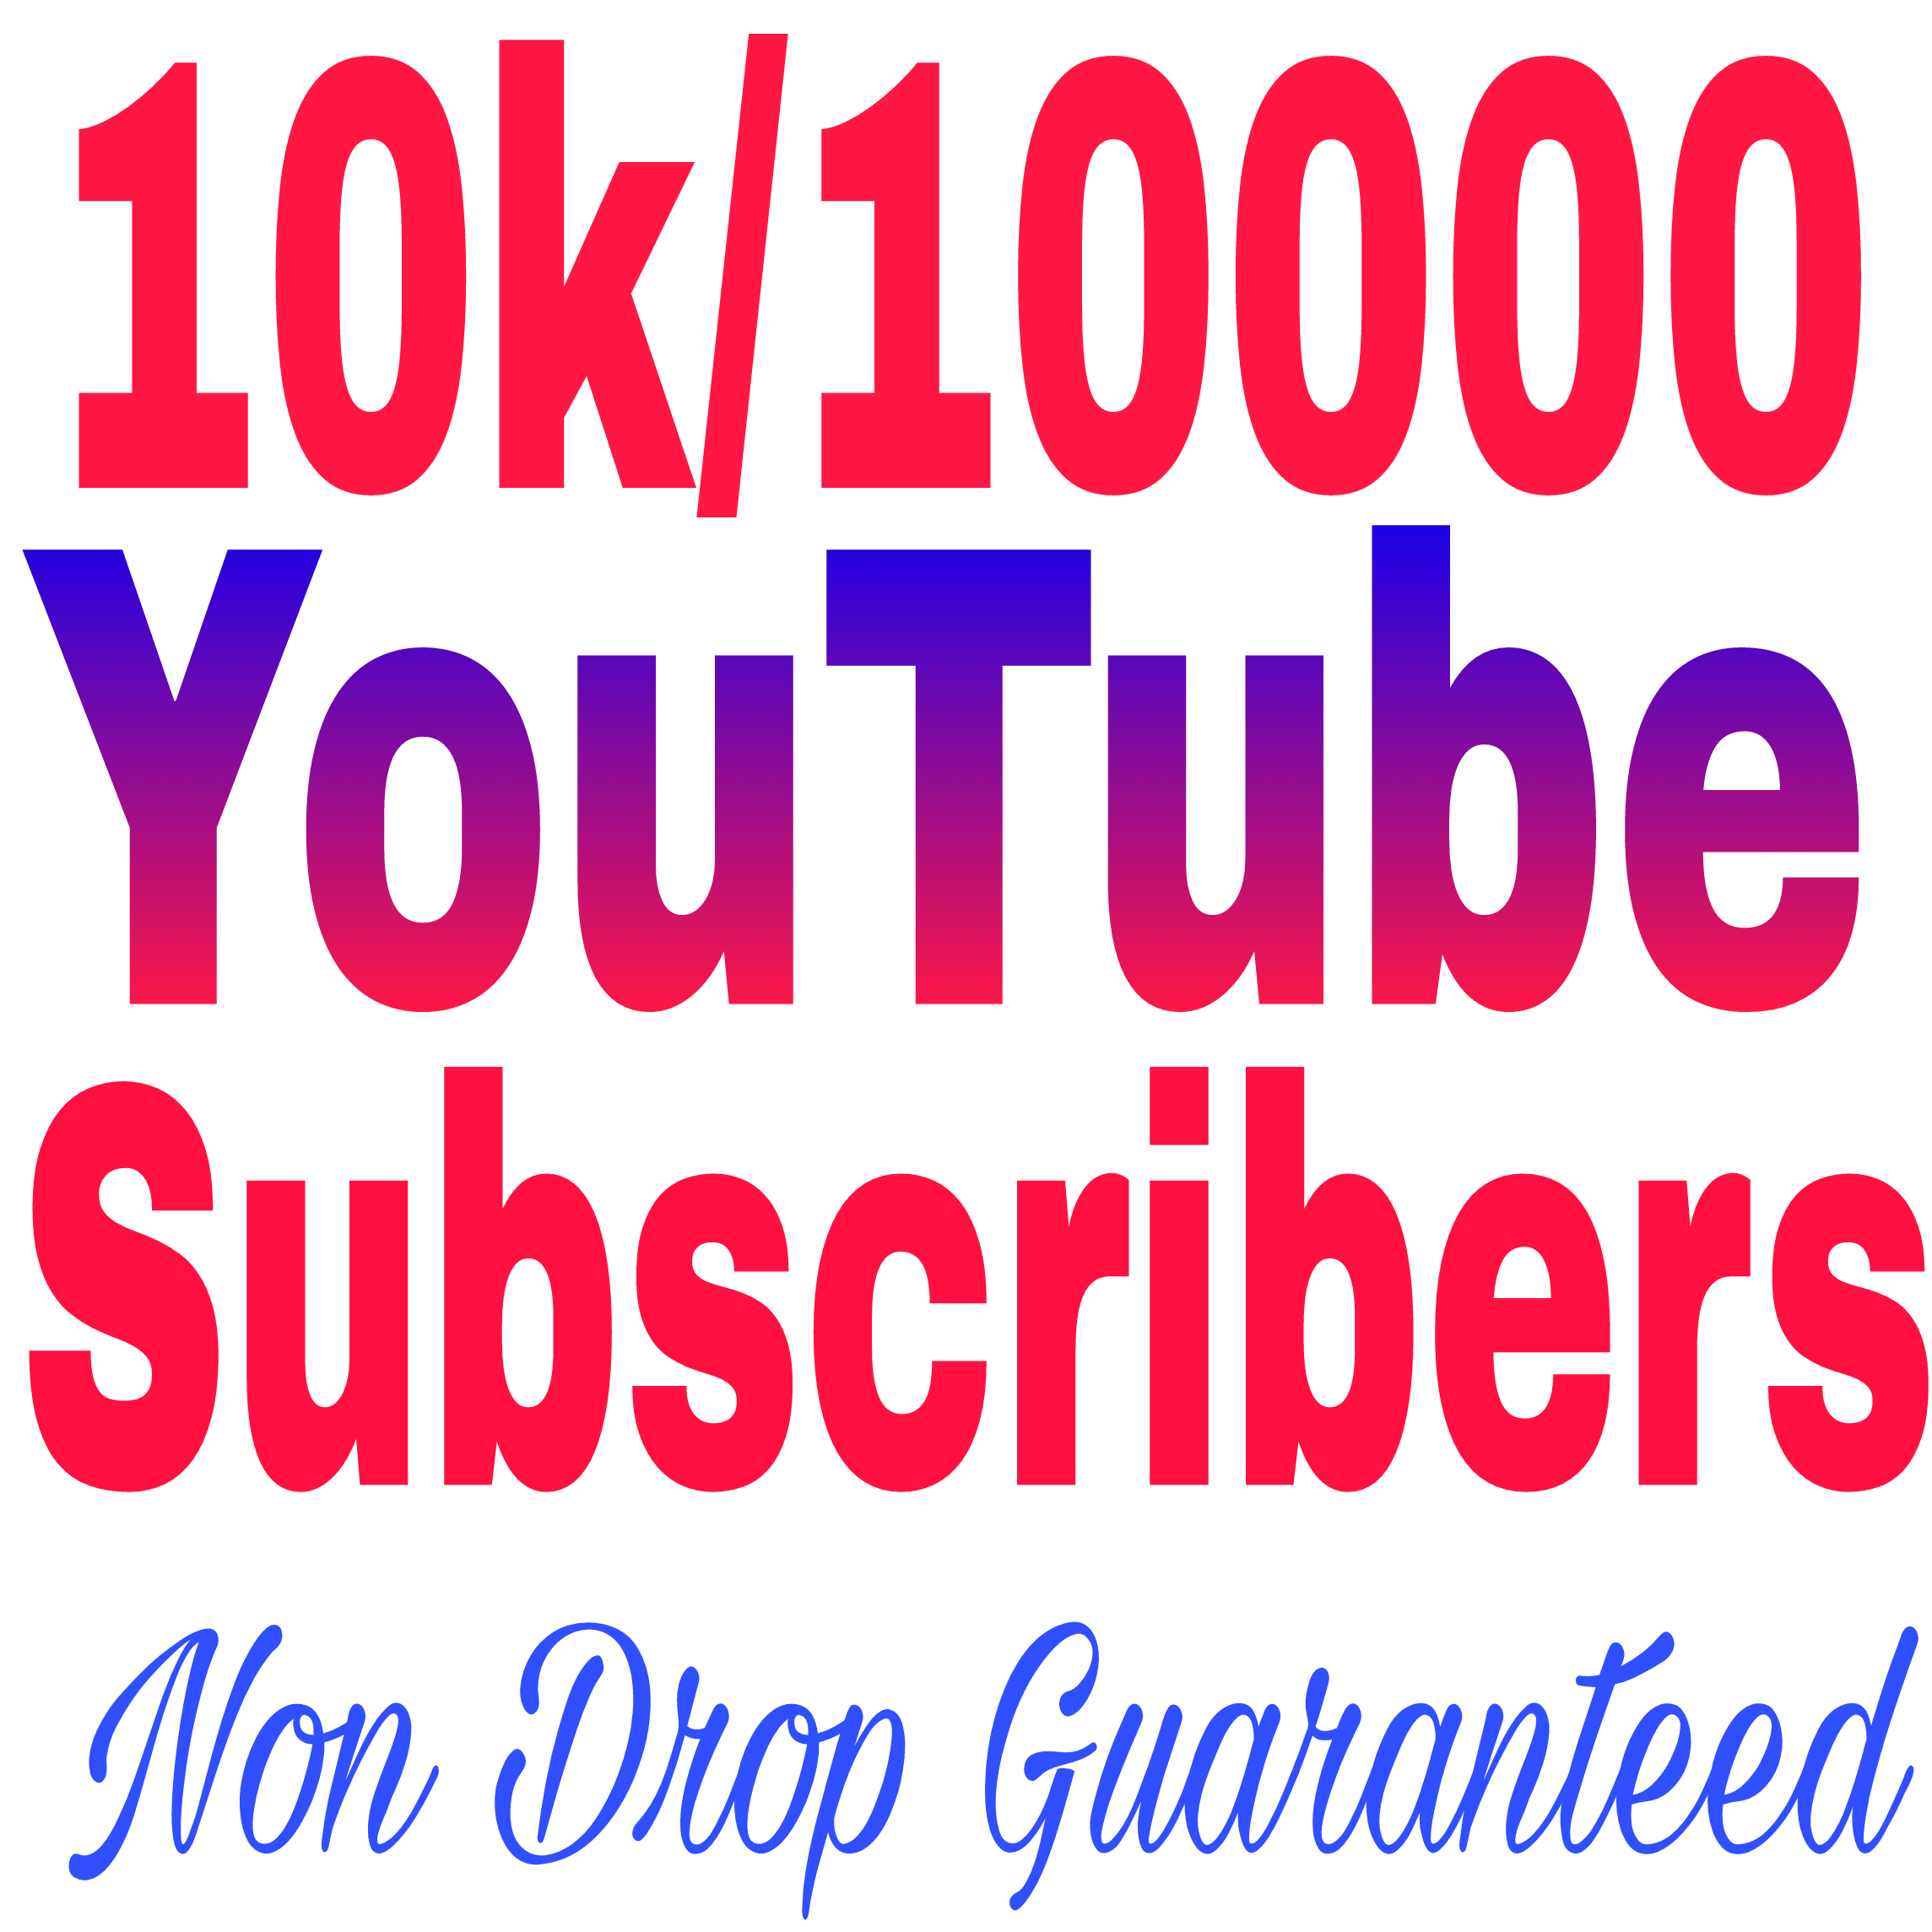 Special offer 10k + Non Drop  Subscribers very fast in 8-24 hours